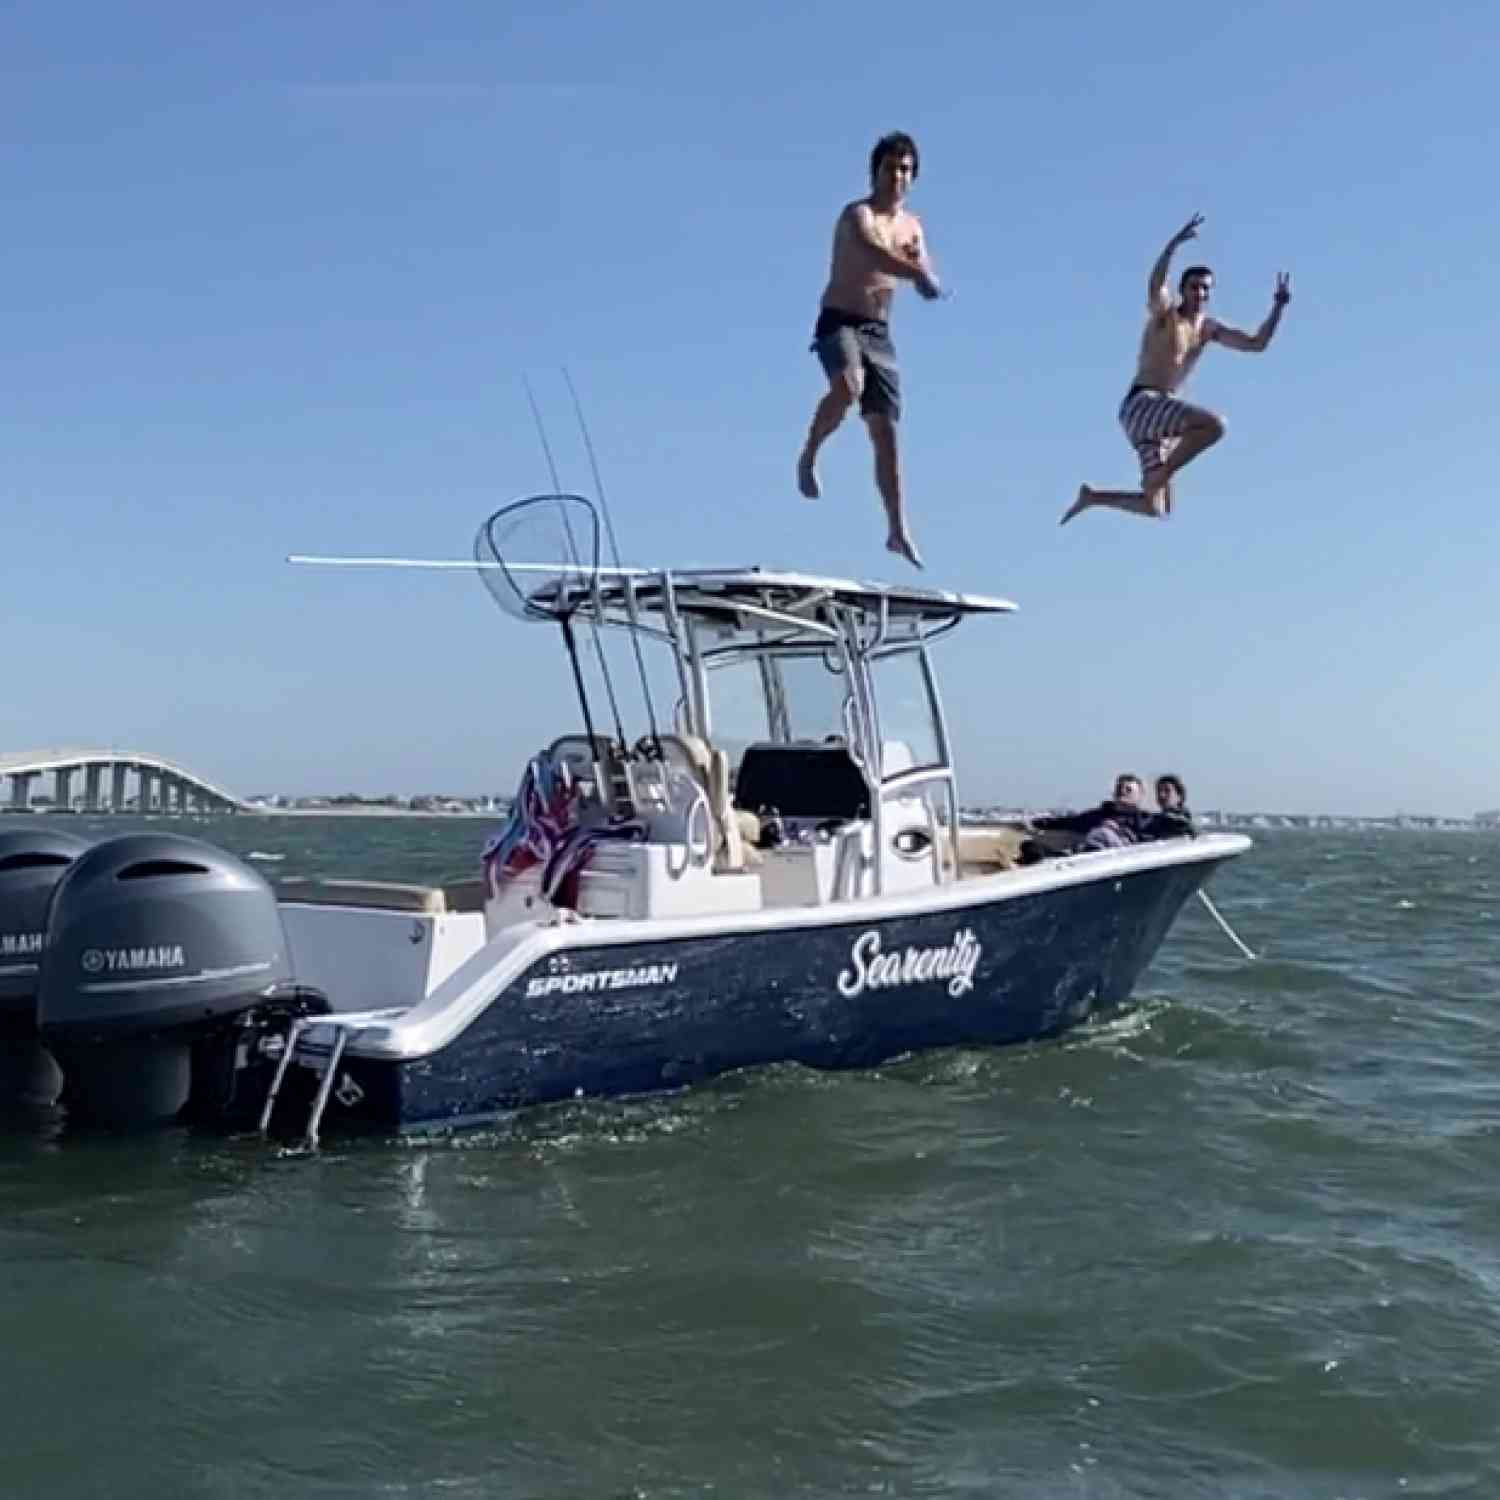 Title: Sportsman Joy - On board their Sportsman Open 282 Center Console - Location: Avalon, Nj. Participating in the Photo Contest #SportsmanMay2020